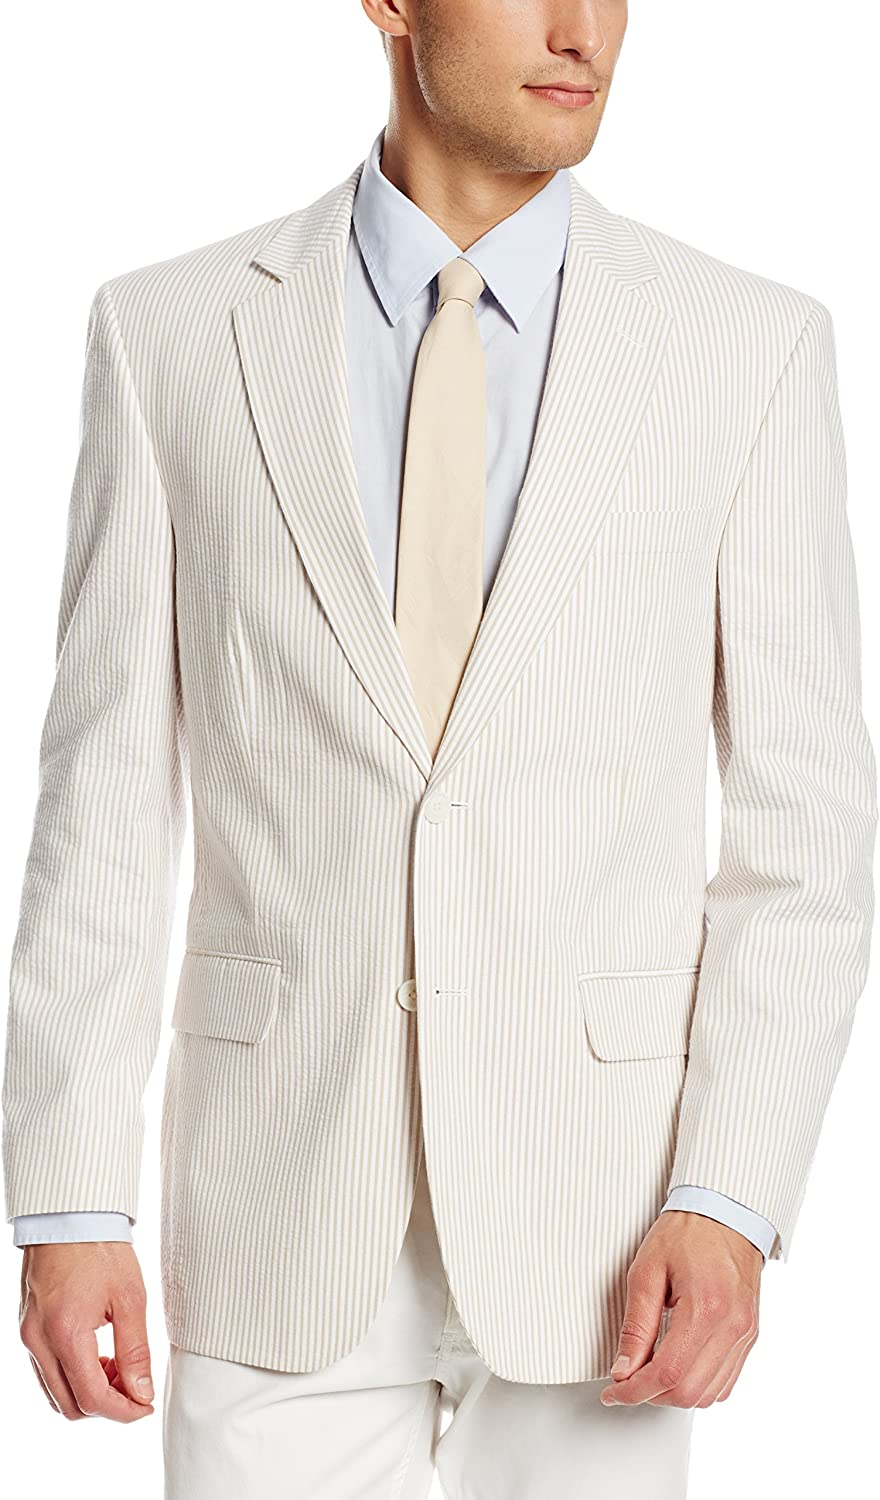 Palm Beach Men's Brock Seersucker Suit Separate Jacket